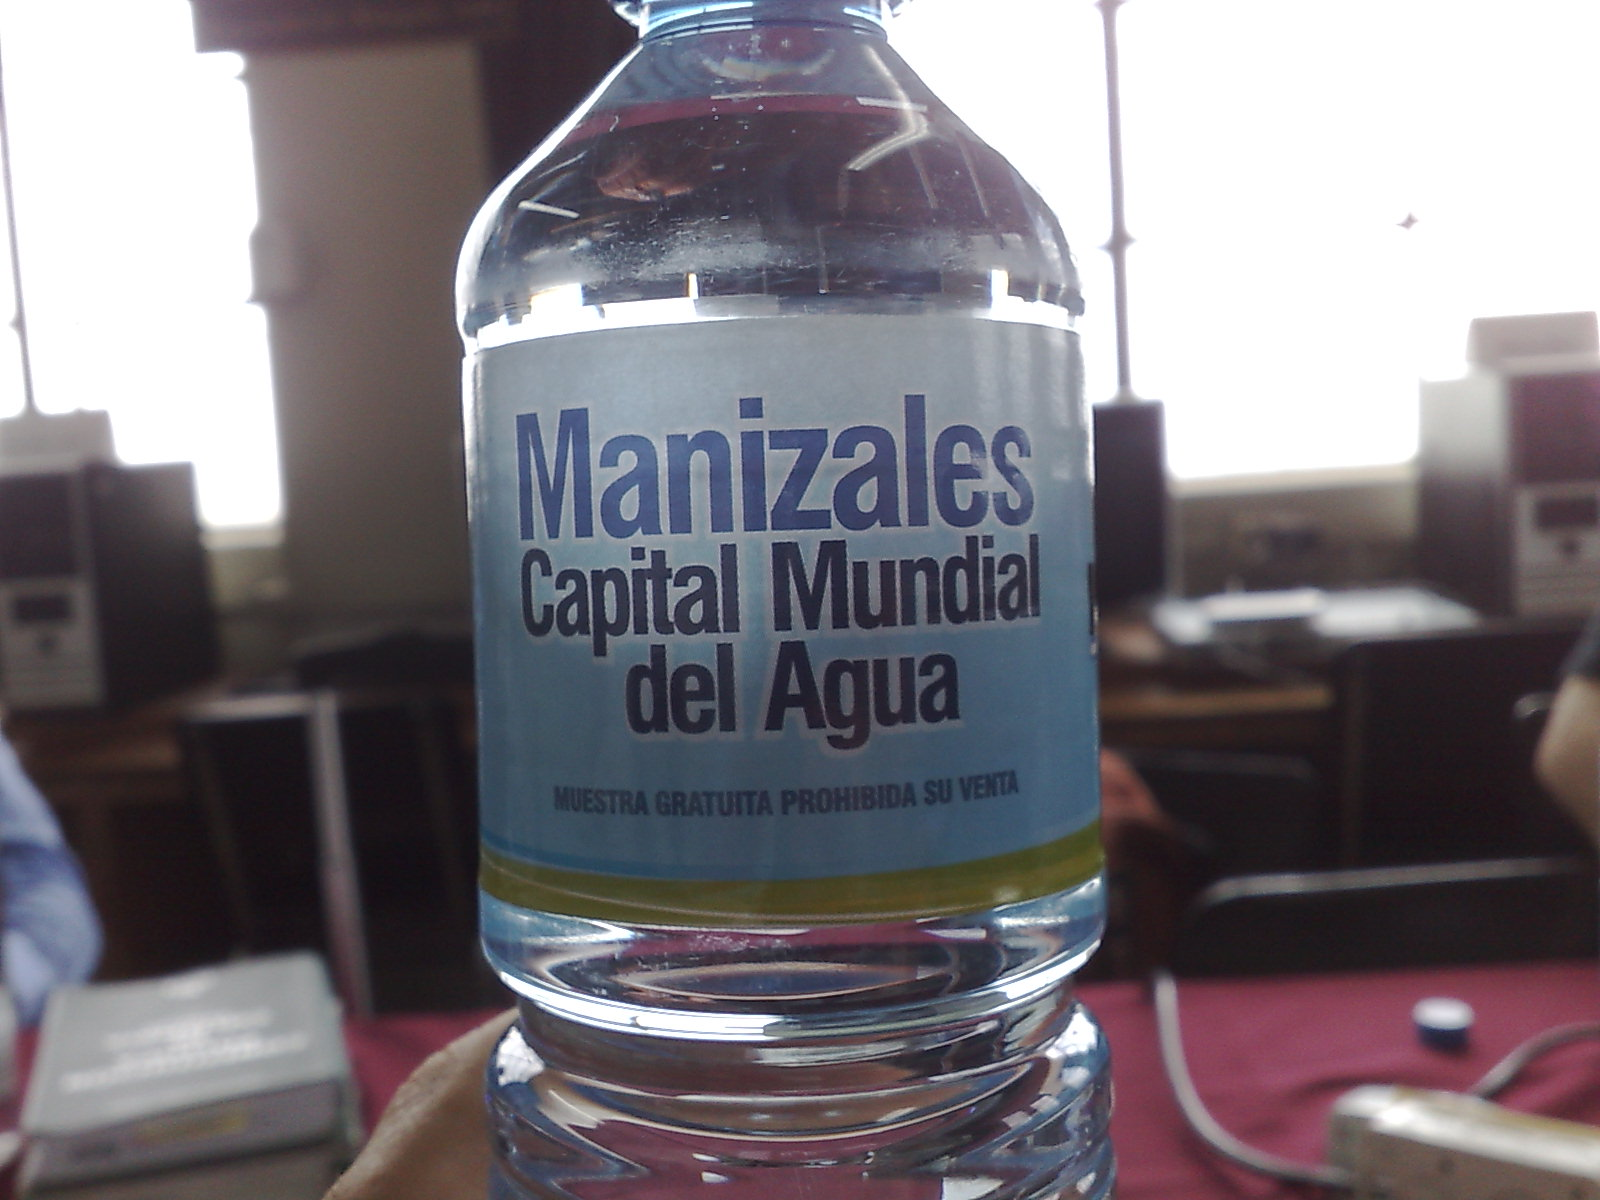 Manizales: The world's water capital